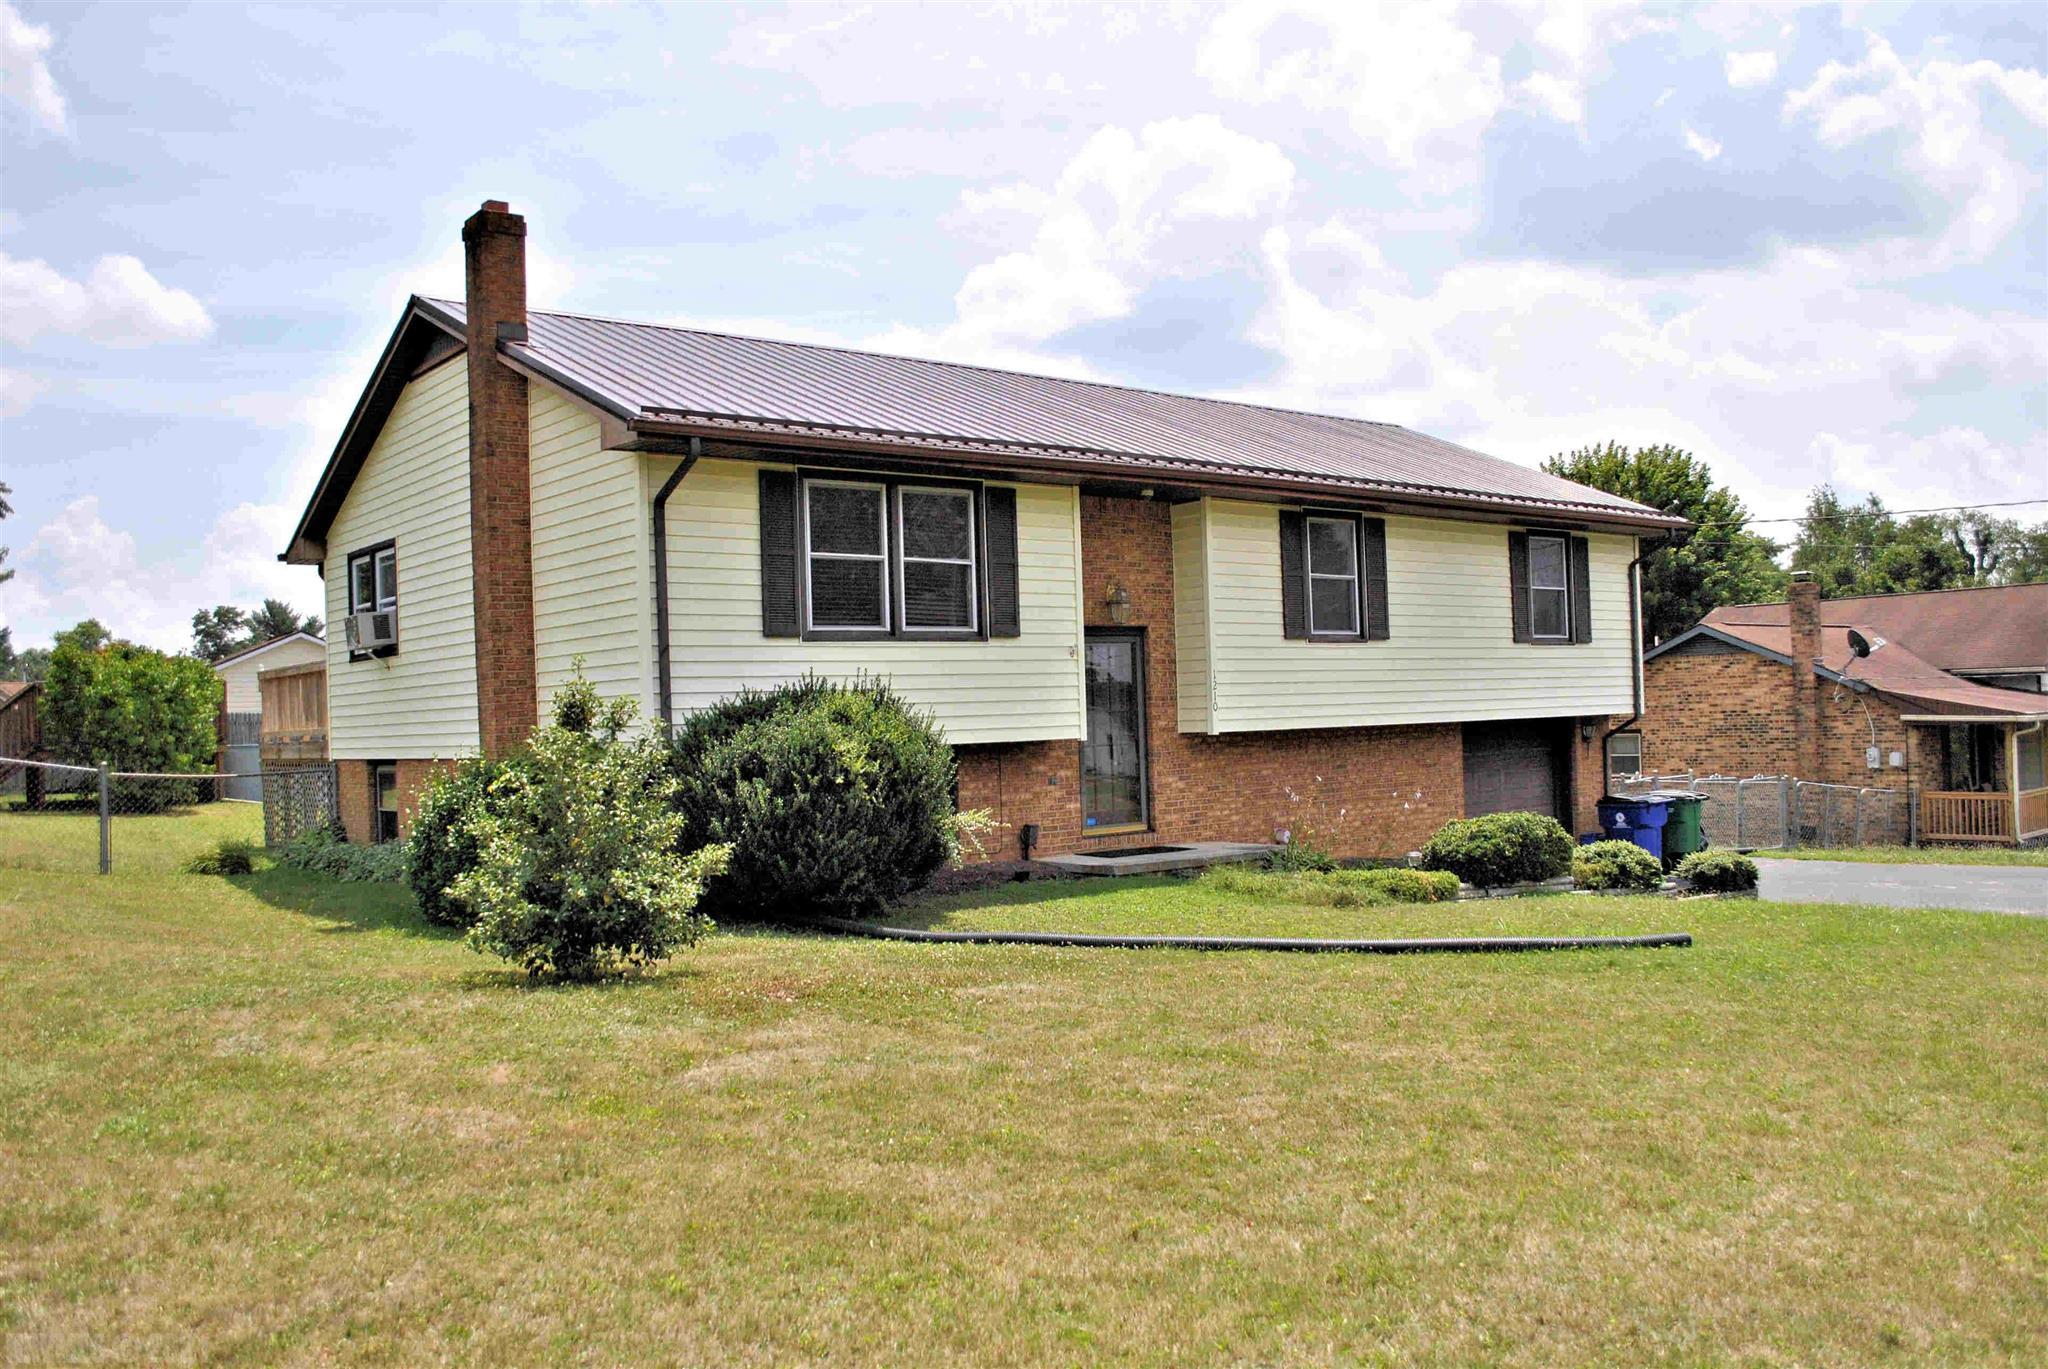 Very nice three bedroom, two bath split foyer on a large, flat lot with a fenced backyard and above ground pool with deck. Very large eat-in kitchen, two decks out back, lower level has large family room, storage areas and access to the one car garage. Located minutes to uptown Christiansburg, I-81 and 460 Bypass. A beautiful house in a beautiful neighborhood.